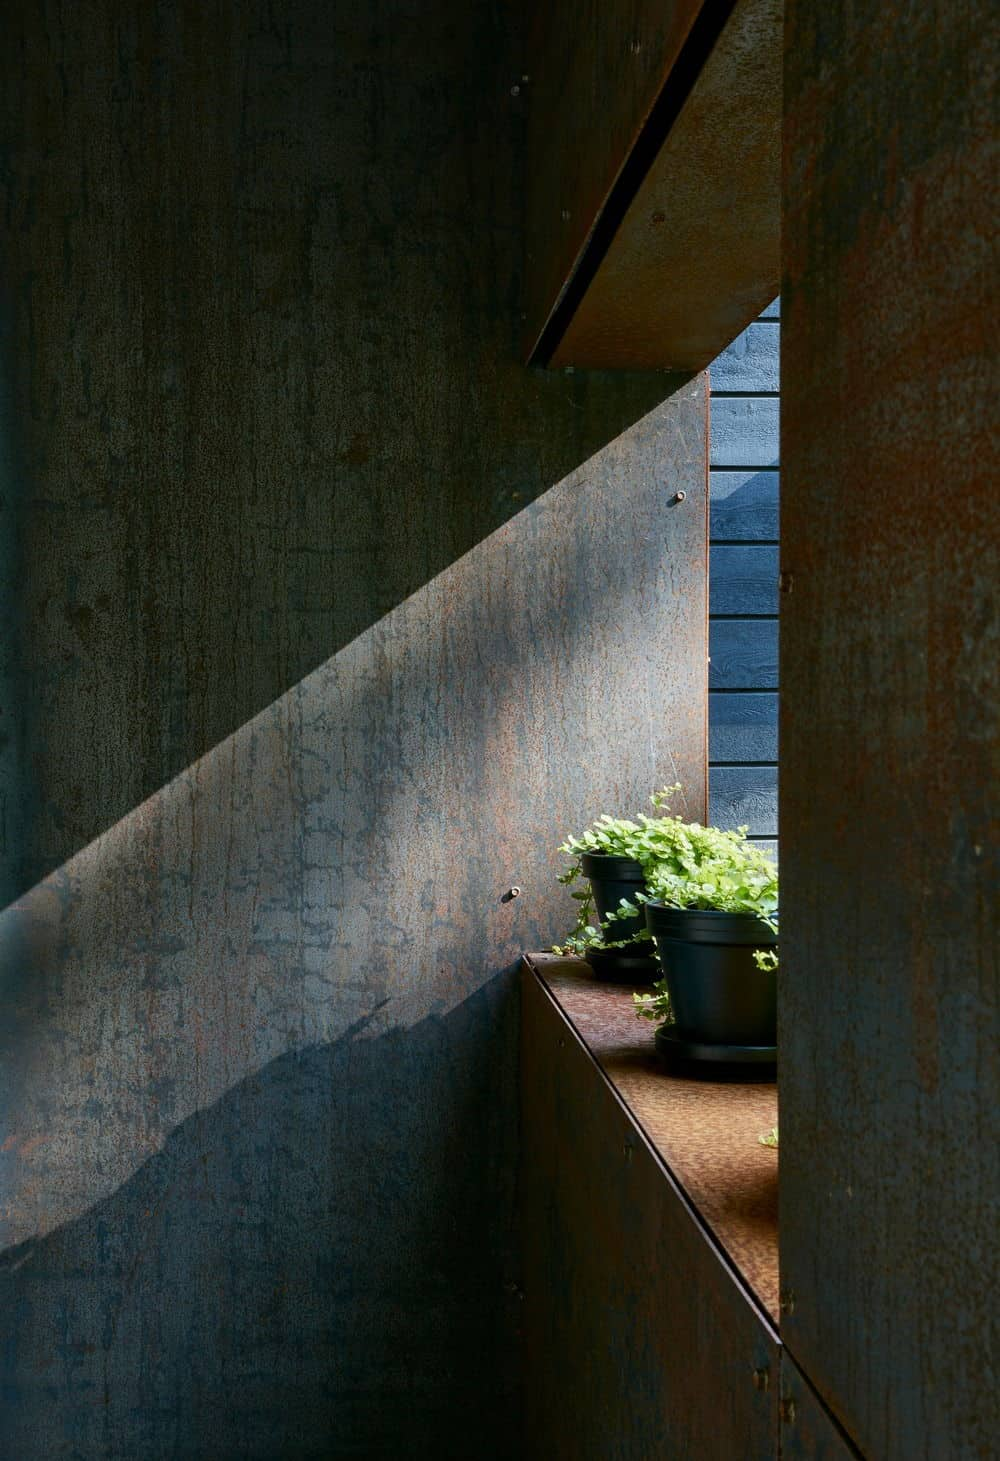 There's also a window for plants that need direct sunlight. Photo Credit: James Brittain